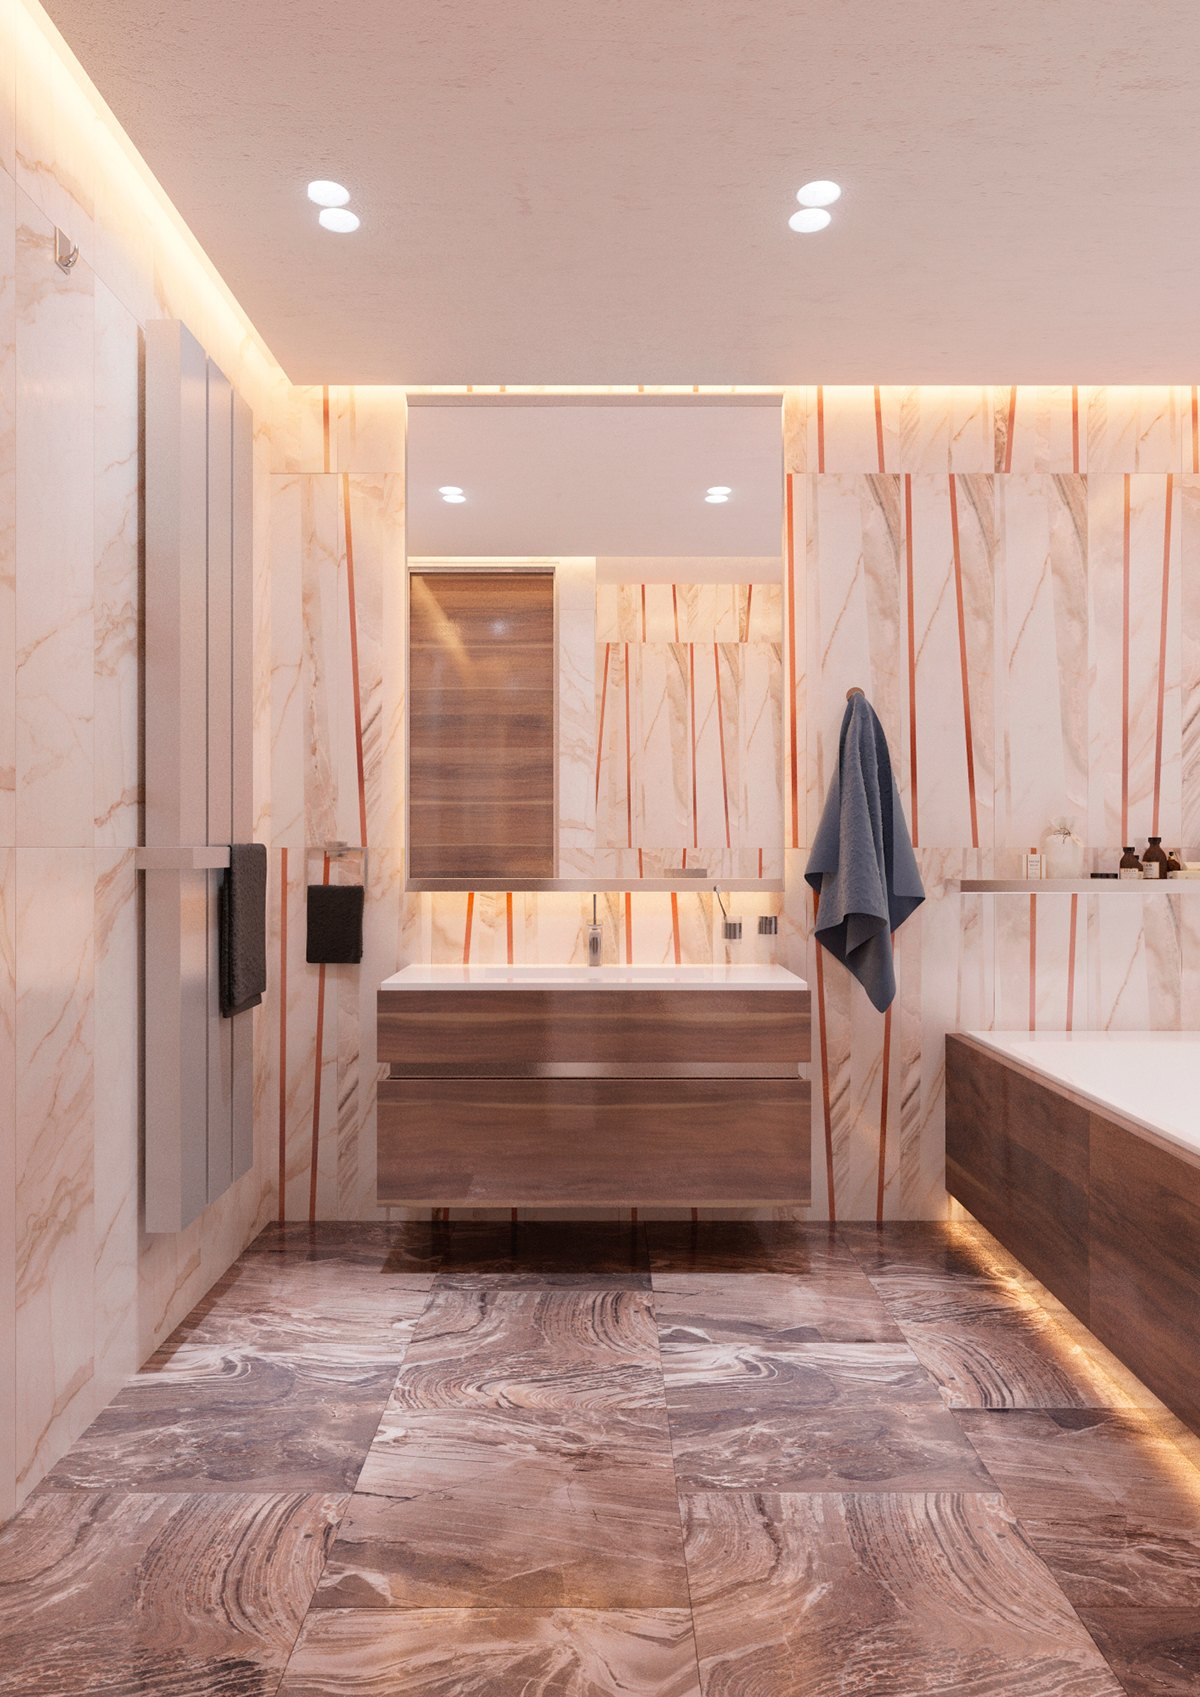 Amazing Bathroom Stone Tile - 5 ideas for a one bedroom apartment with study includes floor plans